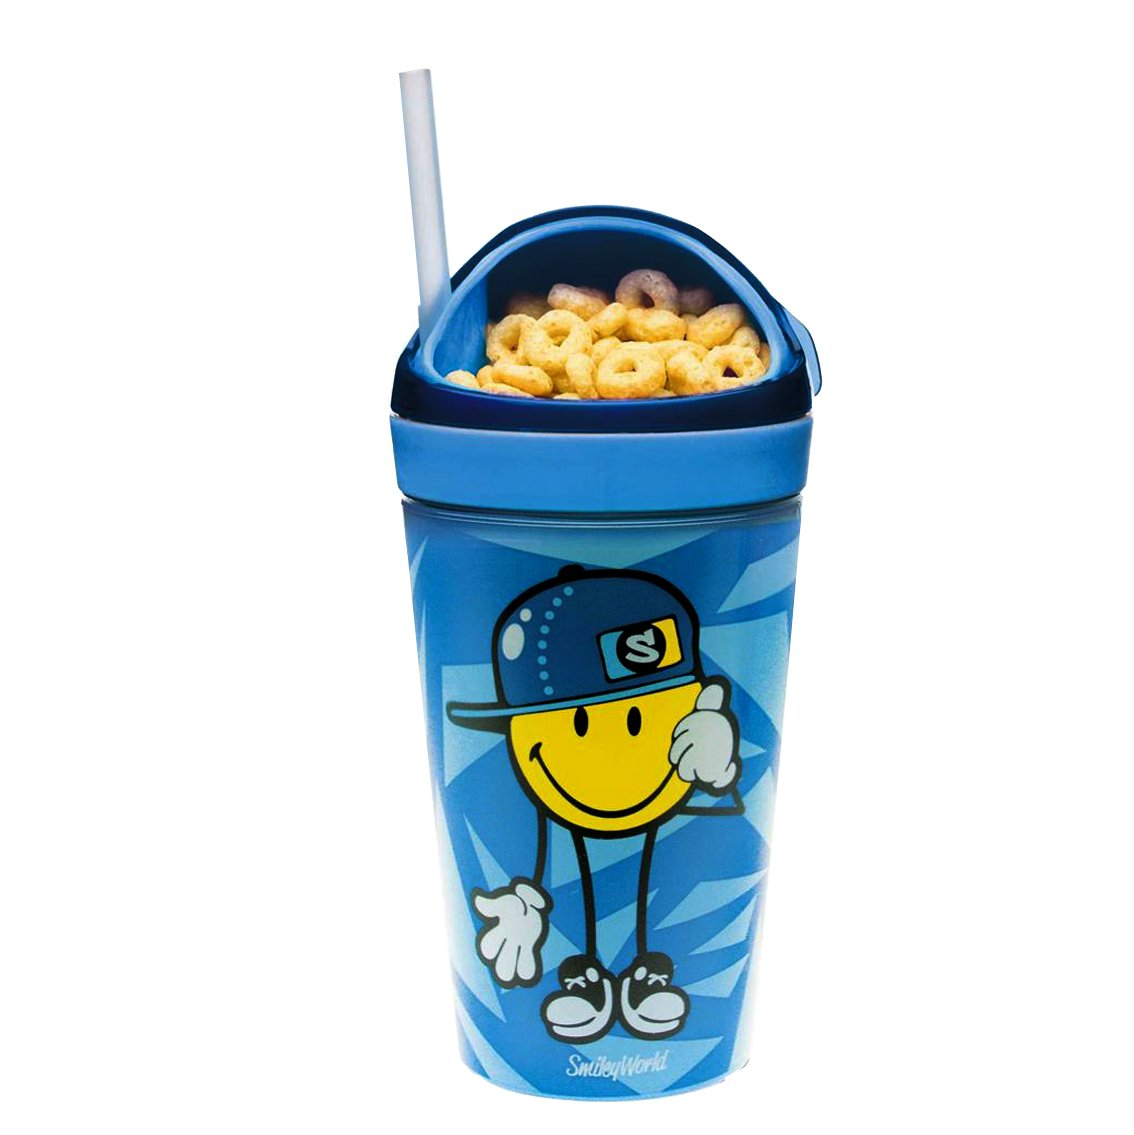 9 x 9 x 18 cm zak Snack-//Trinkbecher Smiley-Junior in blau Polypropylen